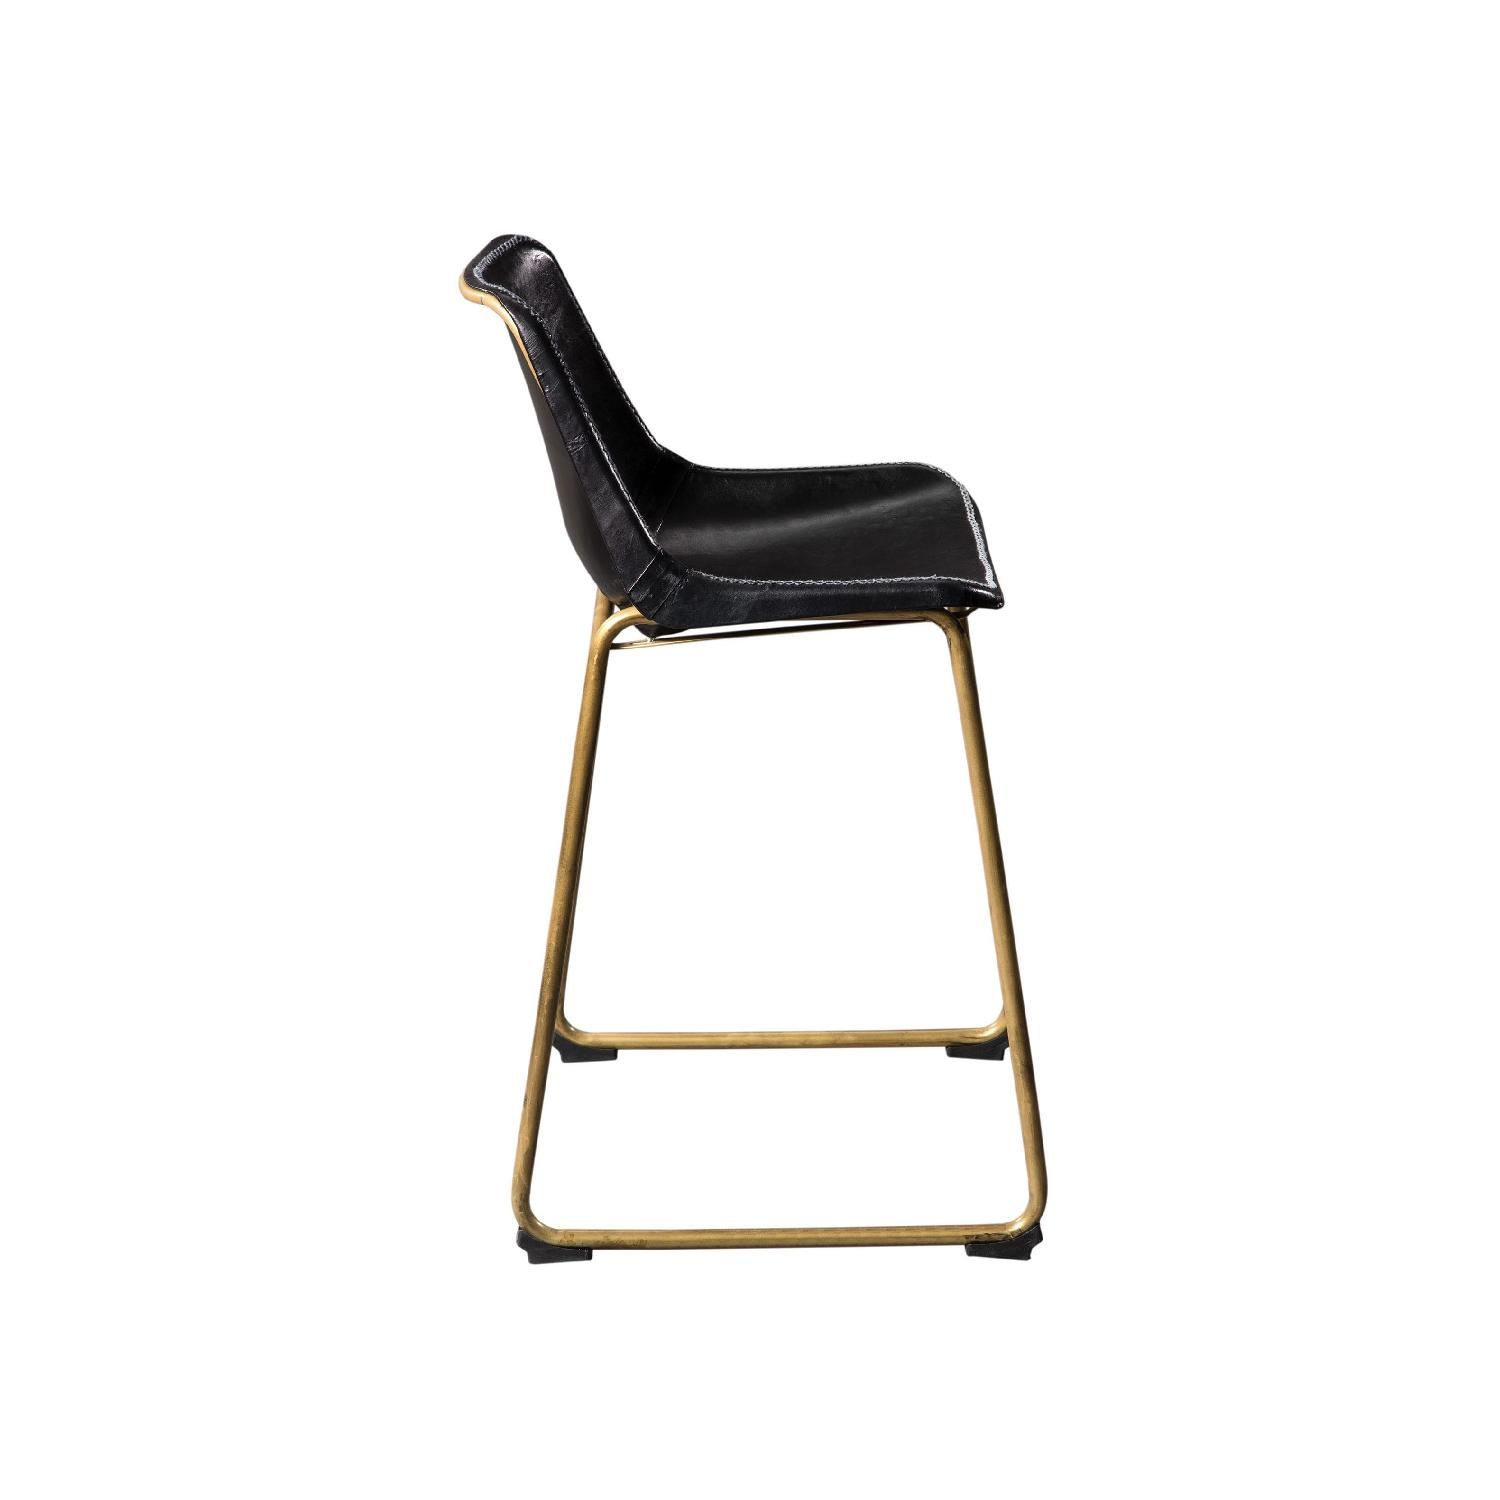 Counter Height Chair w/ Black Seat & Brass Base - image-5